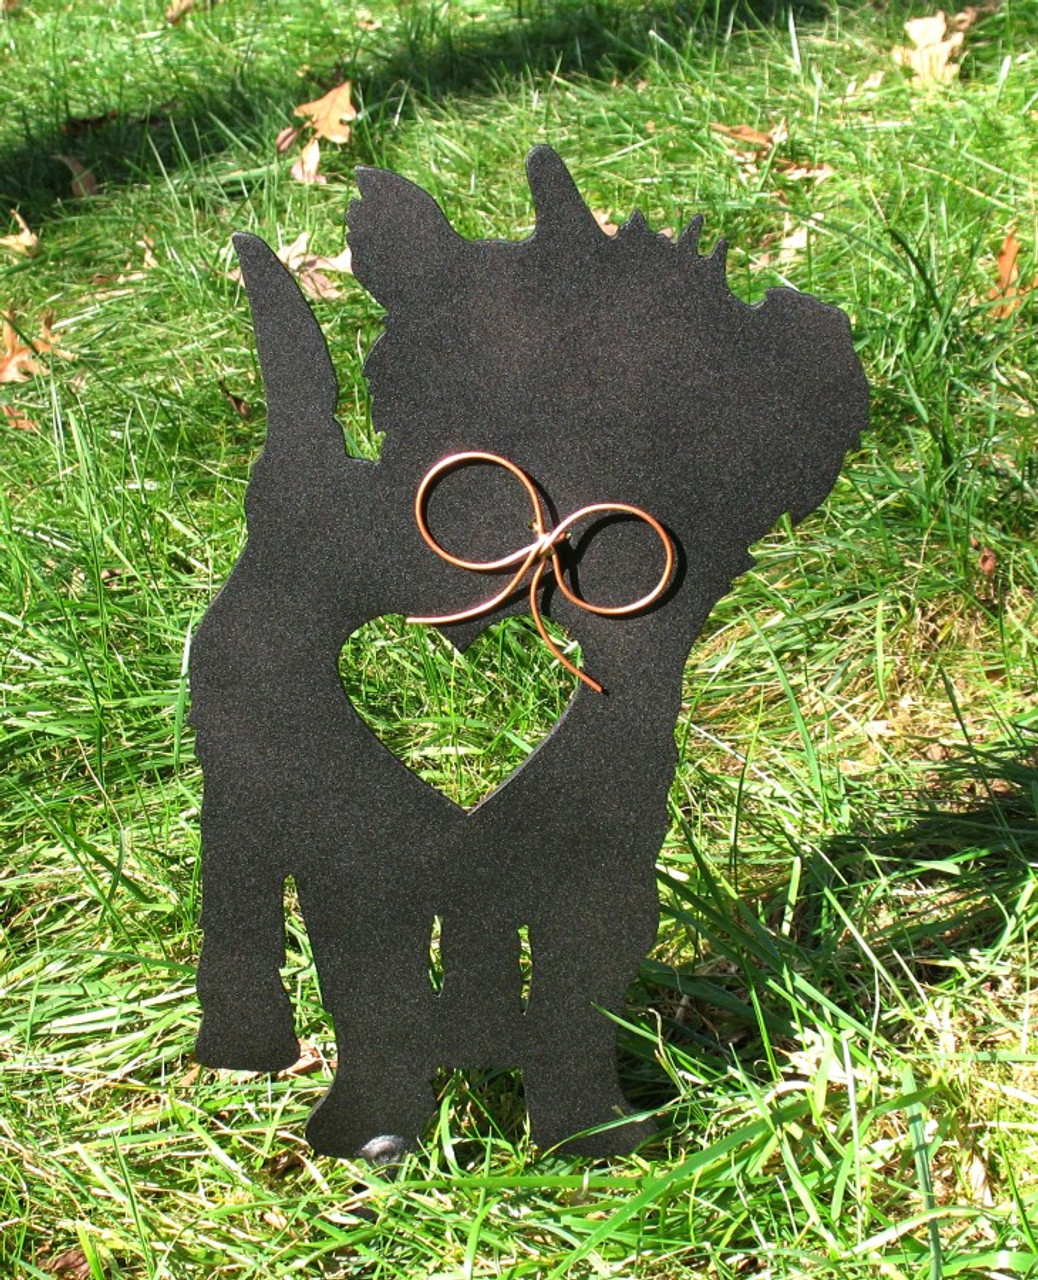 Painted Cairn Terrier Dog Metal Garden Stake - Metal Yard Art - Metal Garden Art - Pet Memorial - 1